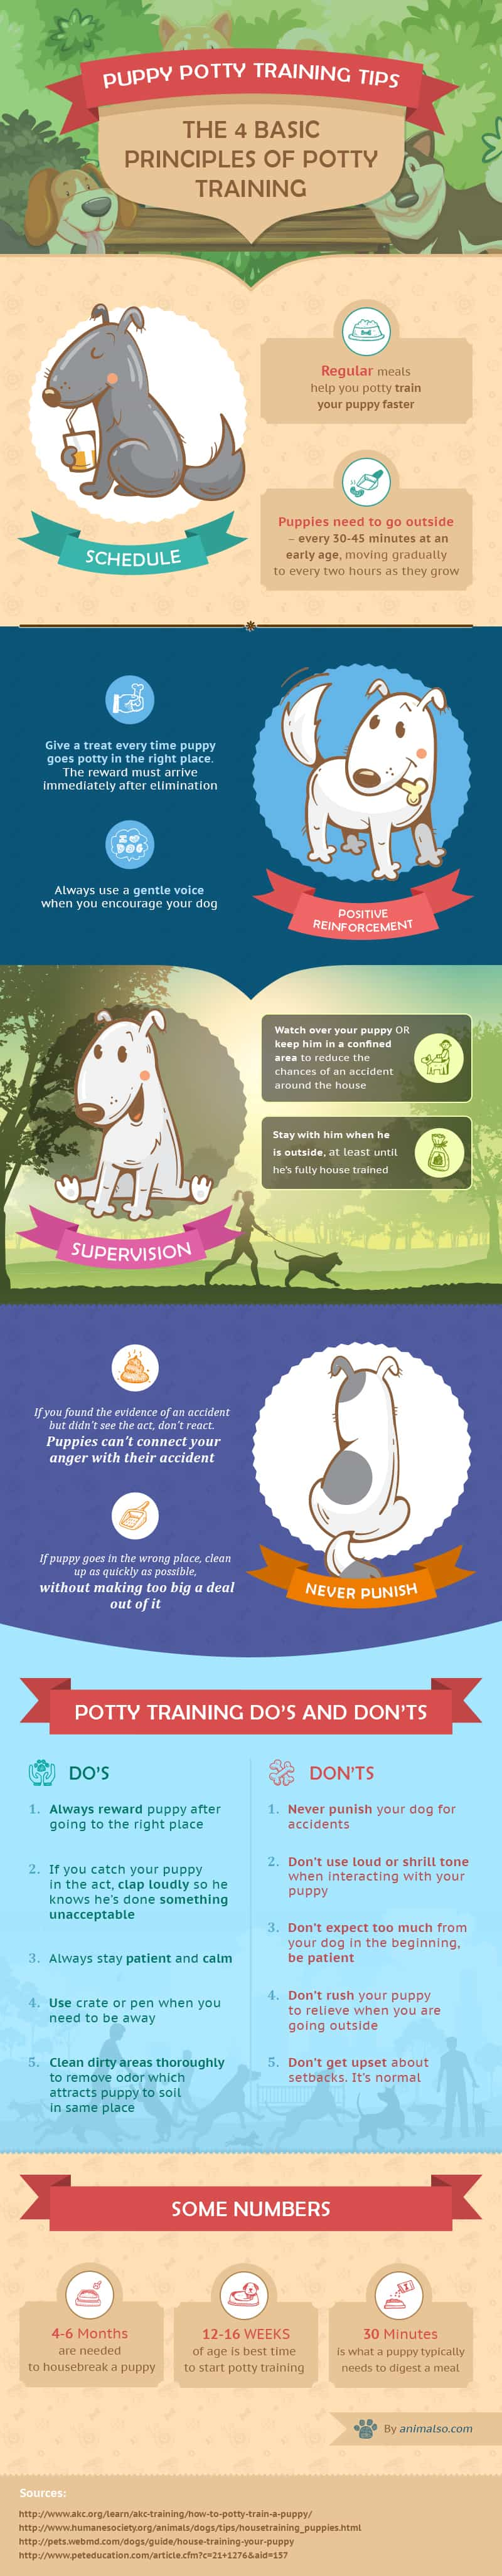 tips on how to toilet train your dog